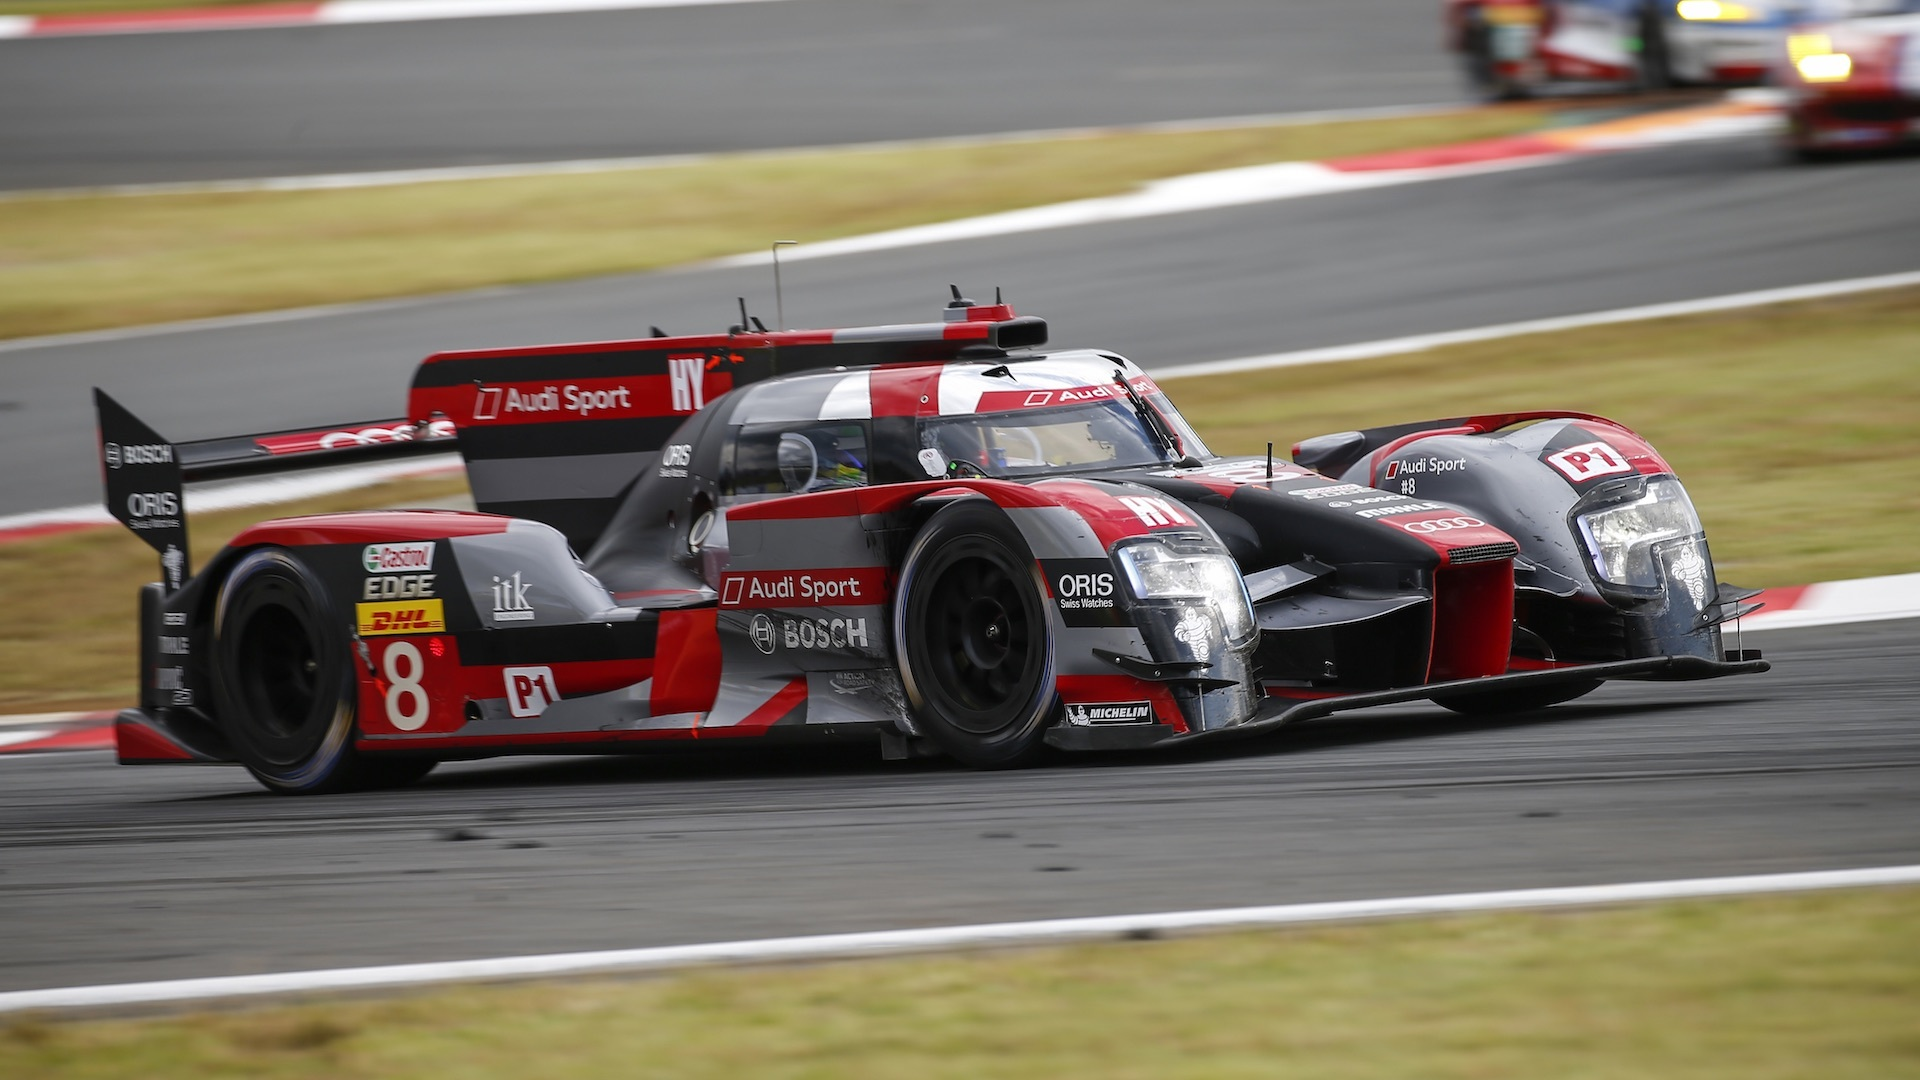 WEC Fuji - Audi second after a thrilling race